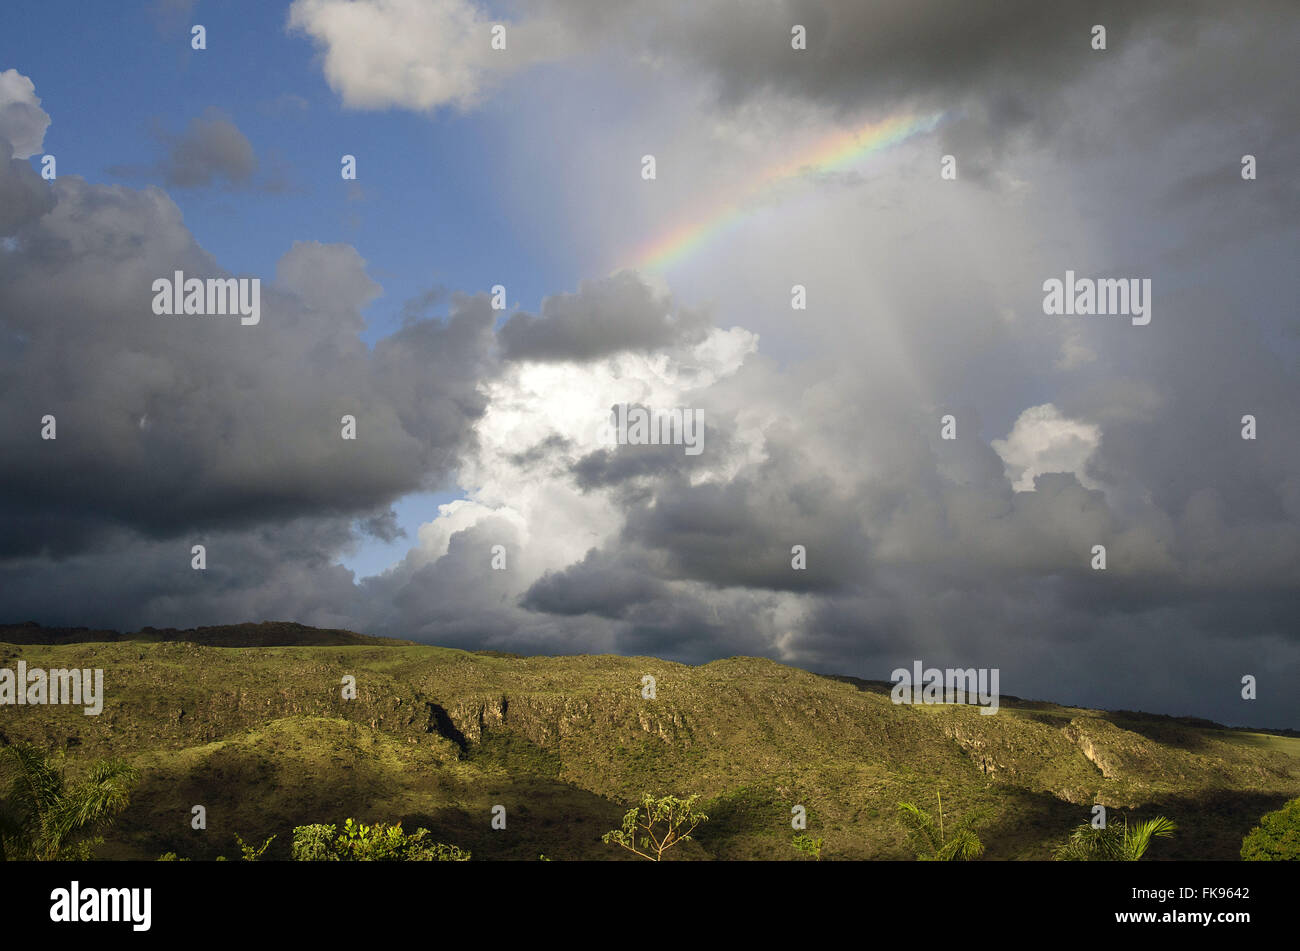 Rainy weather with bow in the Serra da Canastra - Stock Image